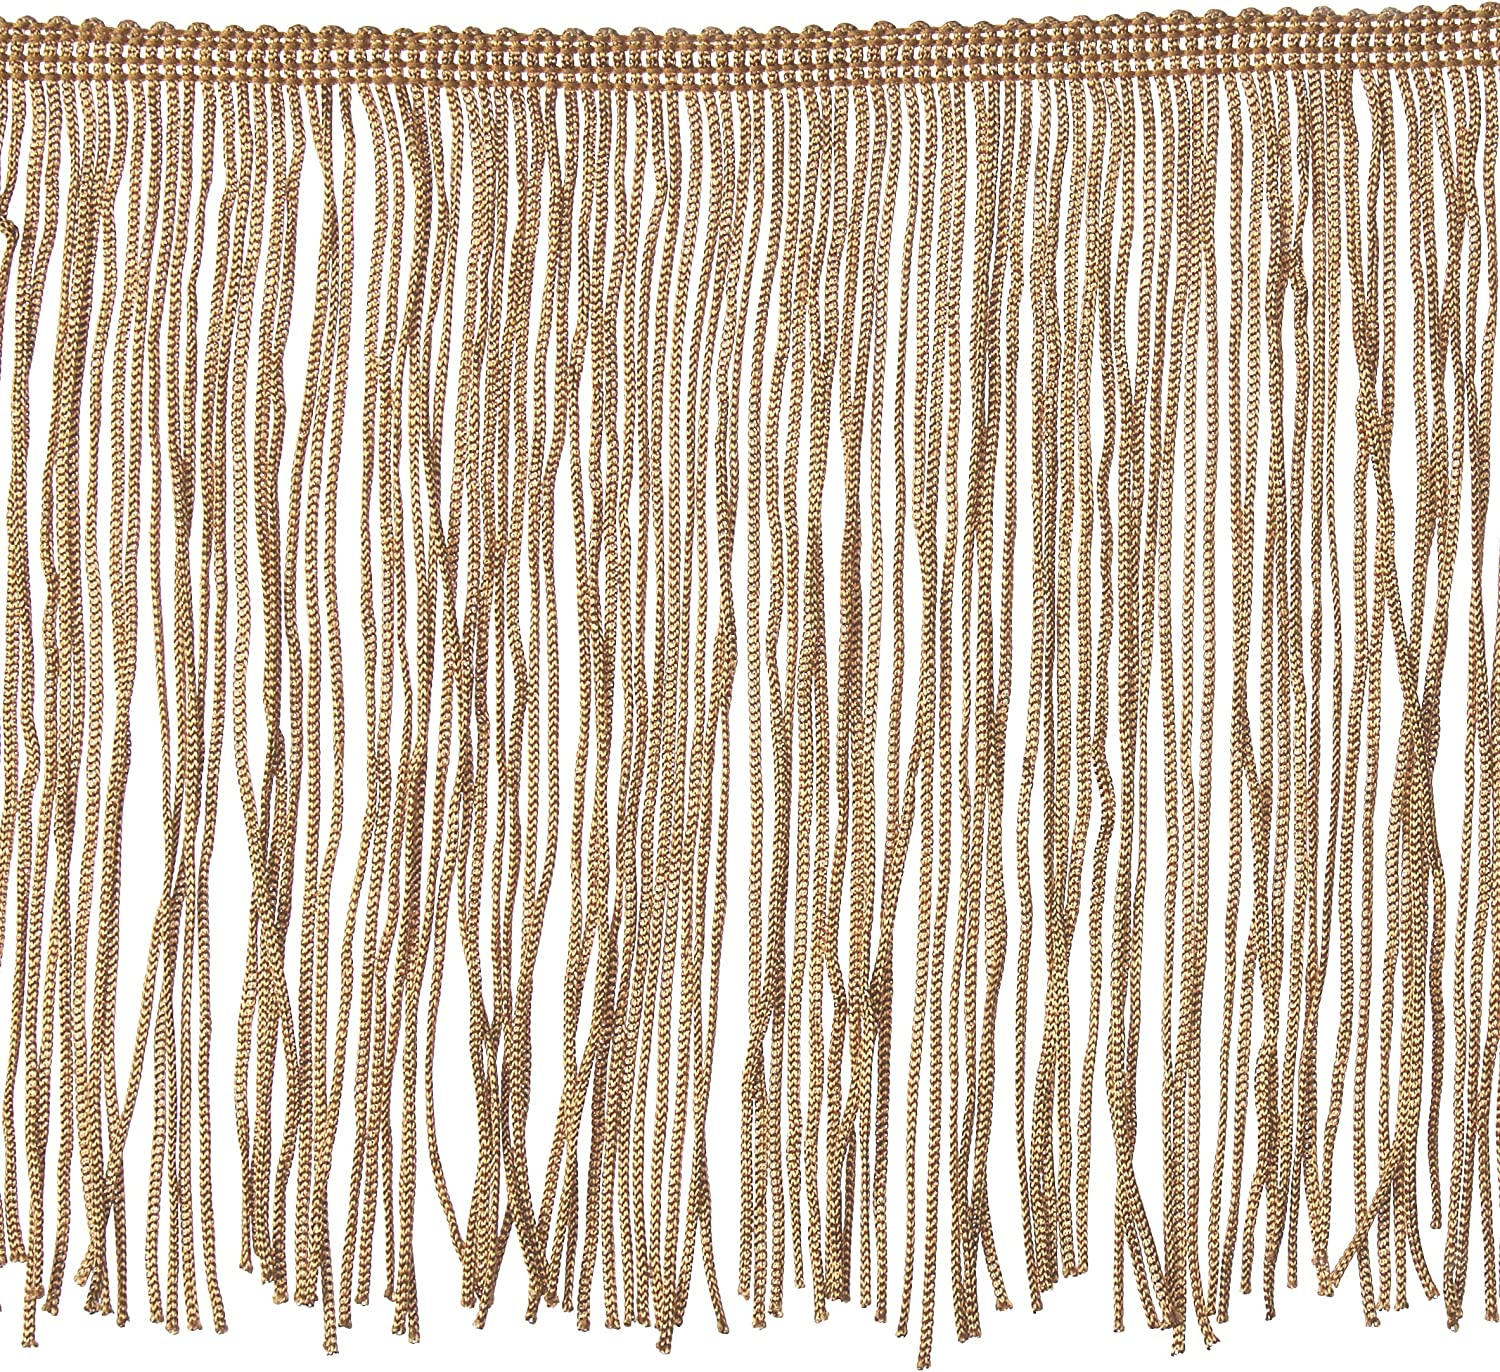 Expo International 10 Yards of 2 Chainette Fringe Trim White